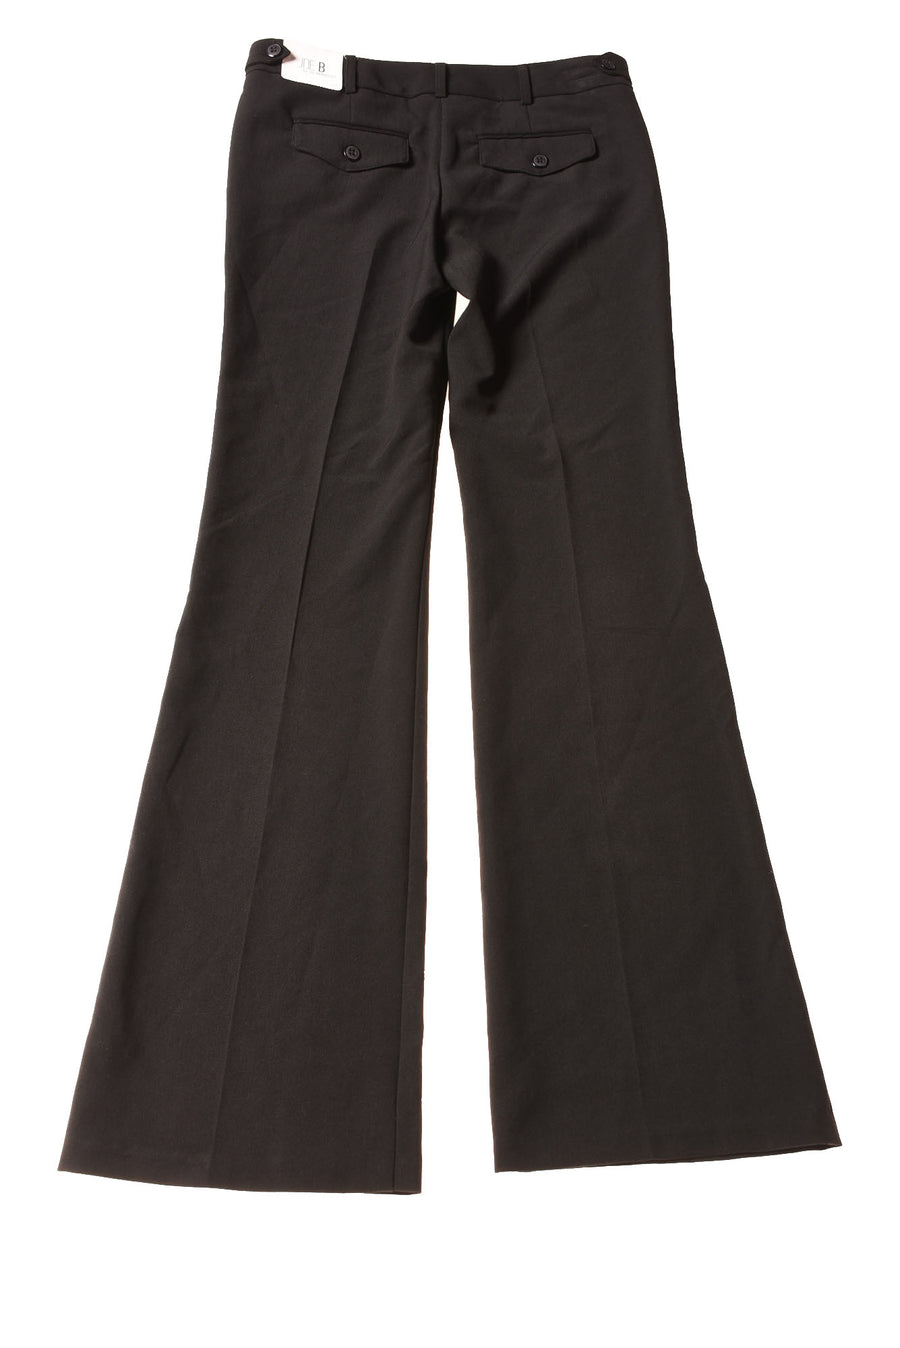 NEW Joe B Women's Slacks 0 Black